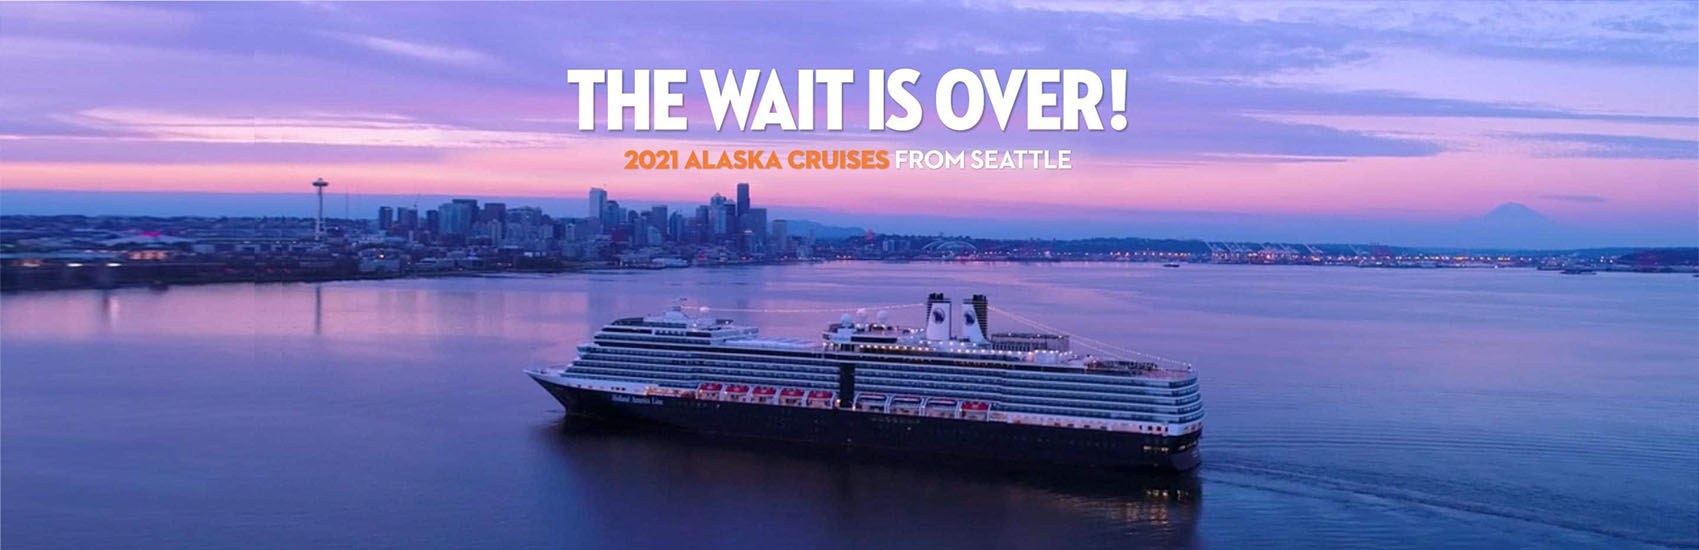 2021 Alaska Cruises from Seattle Now On Sale